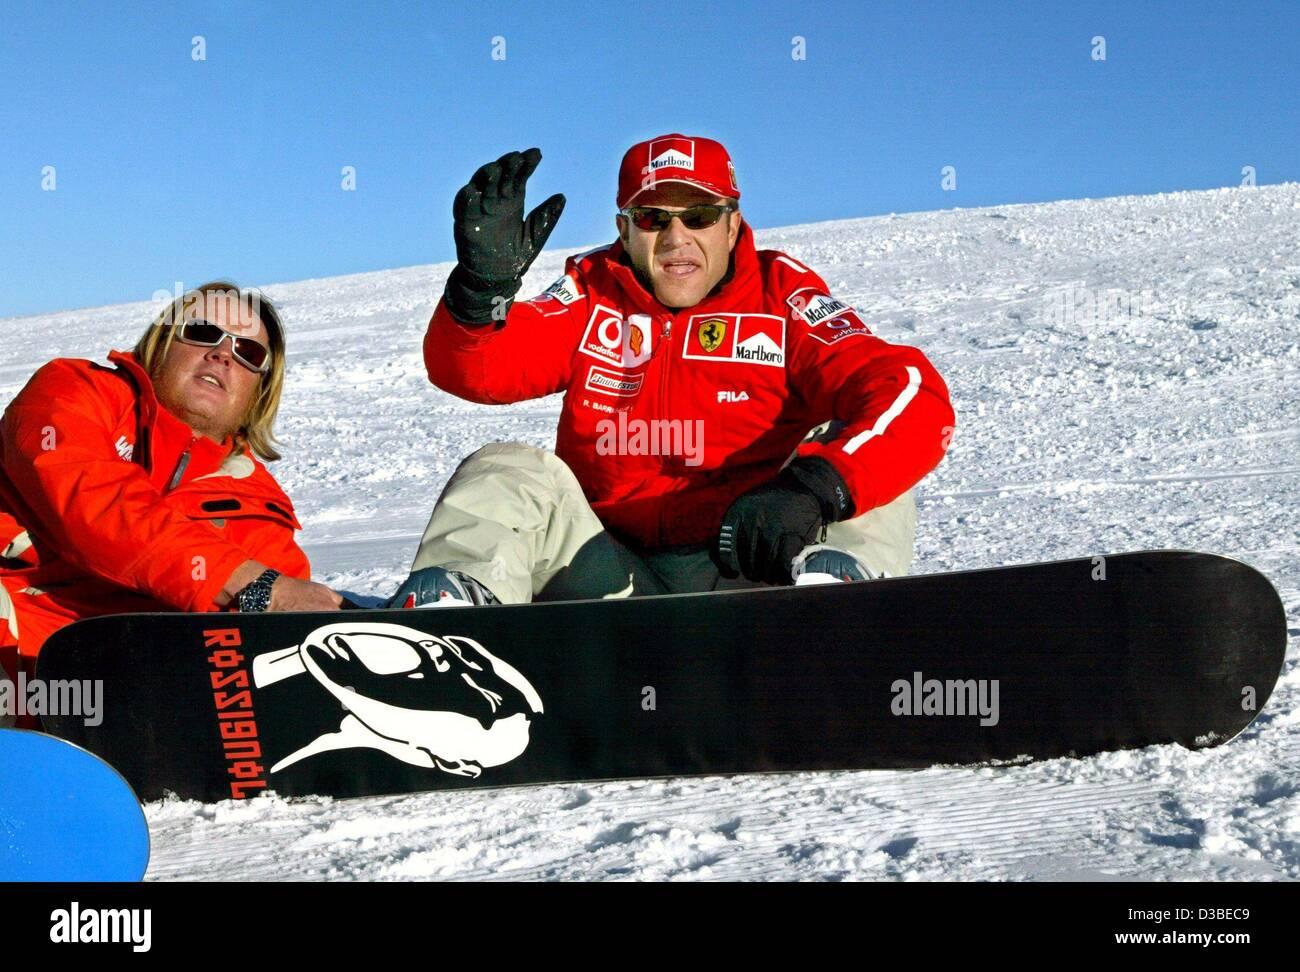 47f4270c1a1 (dpa) - Brazilian formula 1 pilot Rubens Barrichello waves as he pauses  from snowboarding